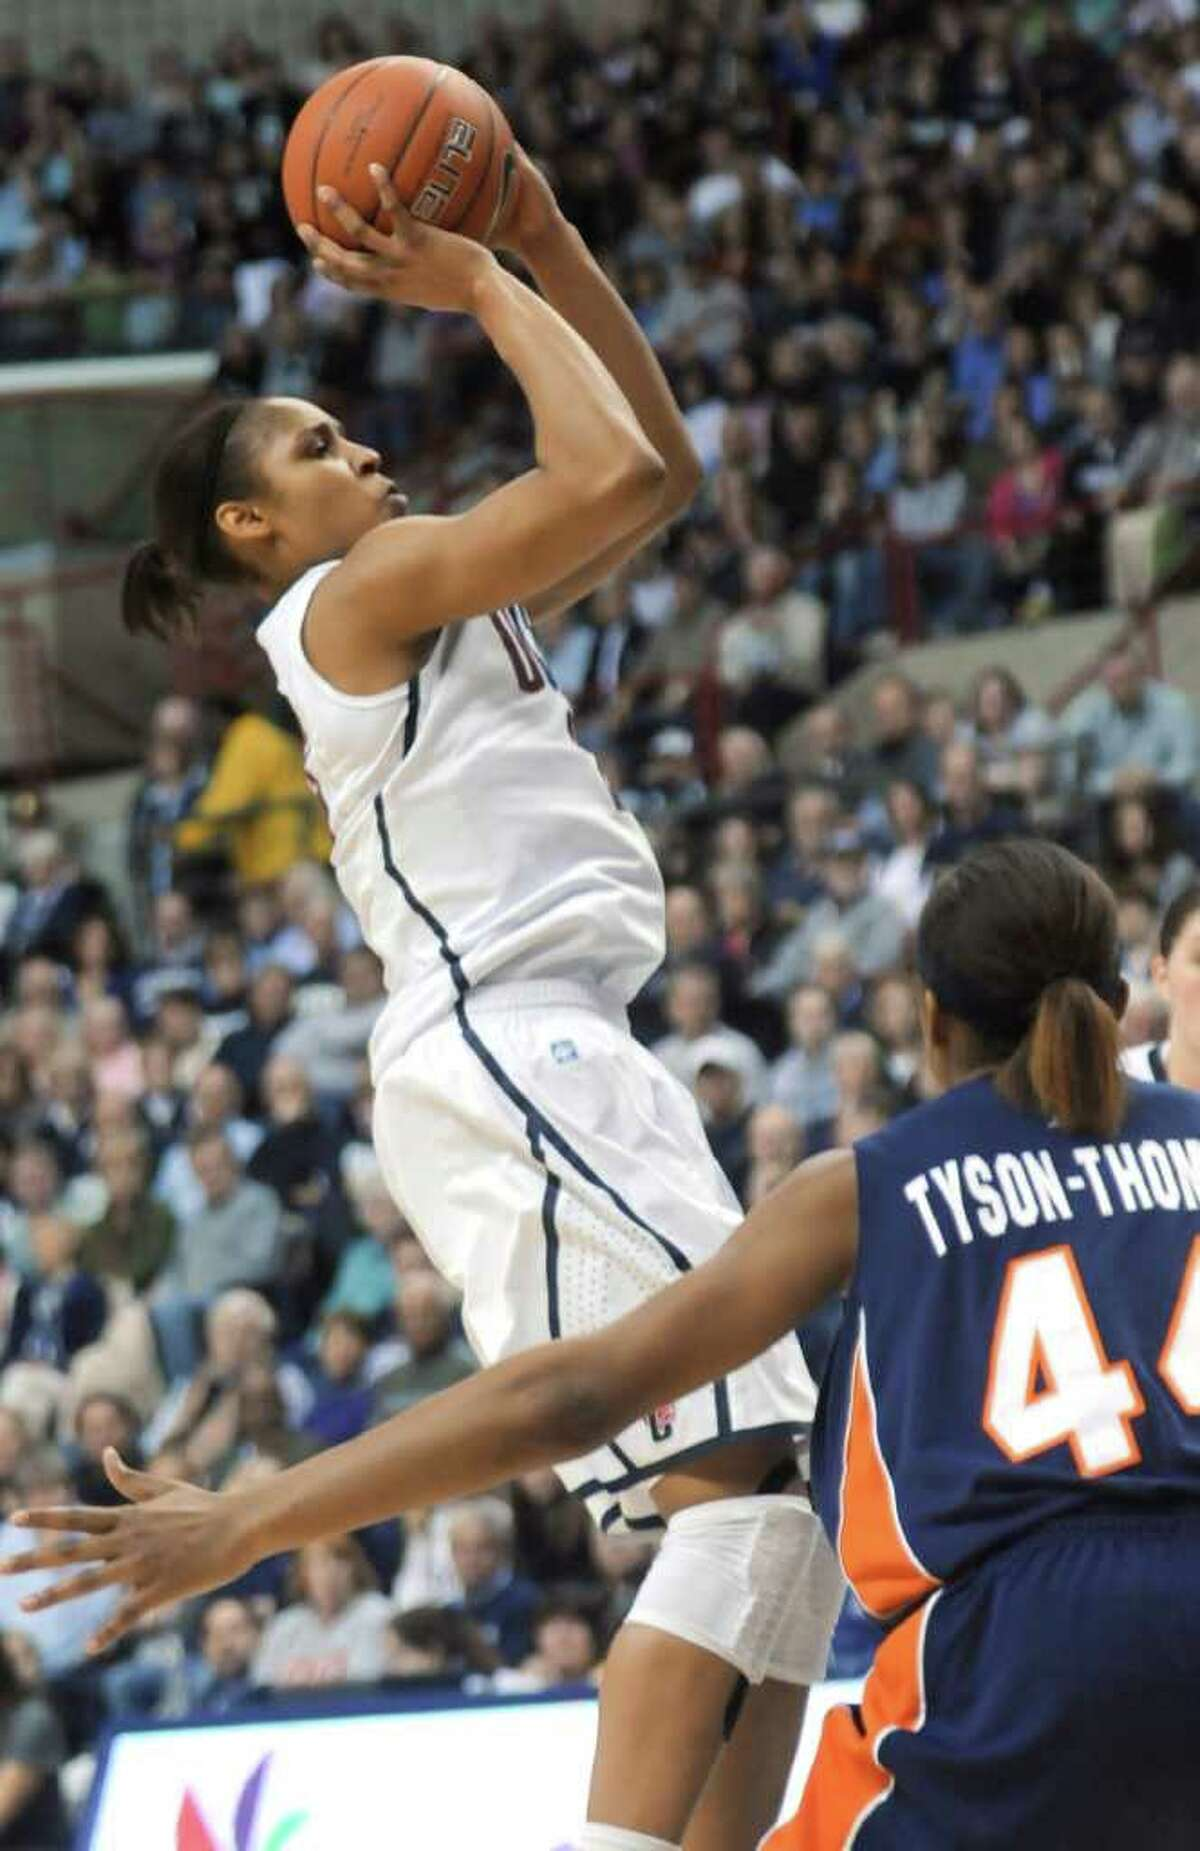 Connecticut's Maya Moore goes up for a jump shot as Syracuse's Carmen Tyson-Thomas watches in the first half of an NCAA college basketball game in Storrs, Conn., Monday, Feb. 28, 2011. (AP Photo/Bob Child)